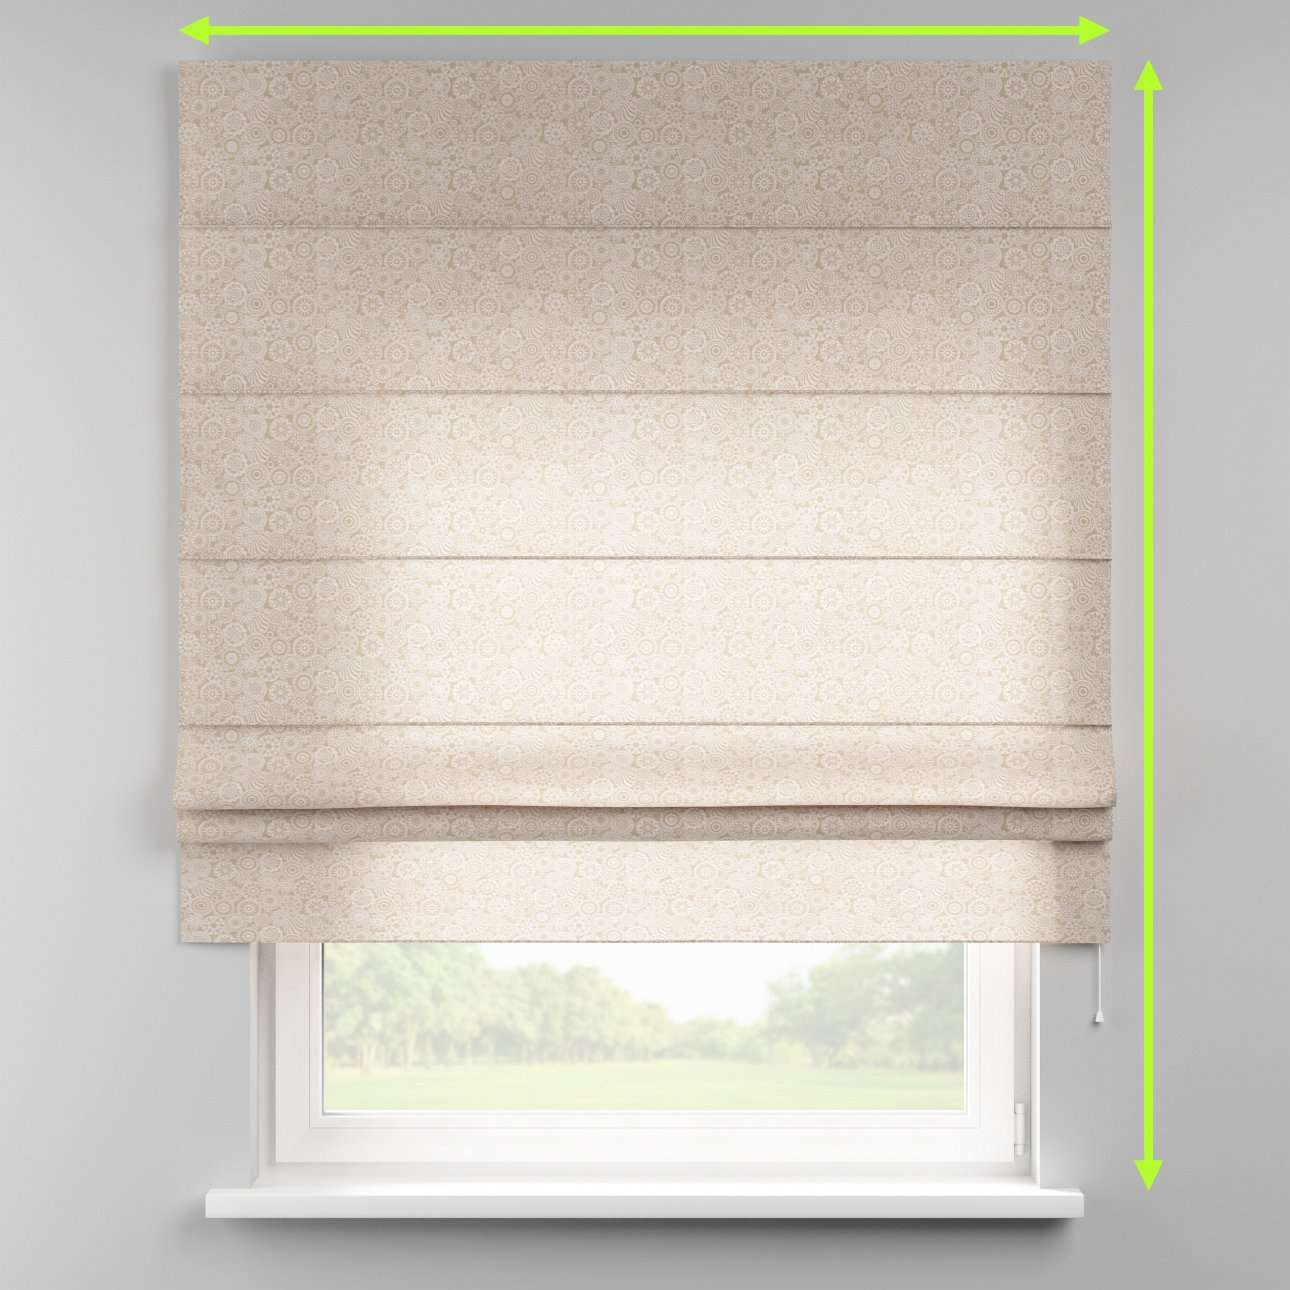 Padva roman blind  in collection Flowers, fabric: 311-09